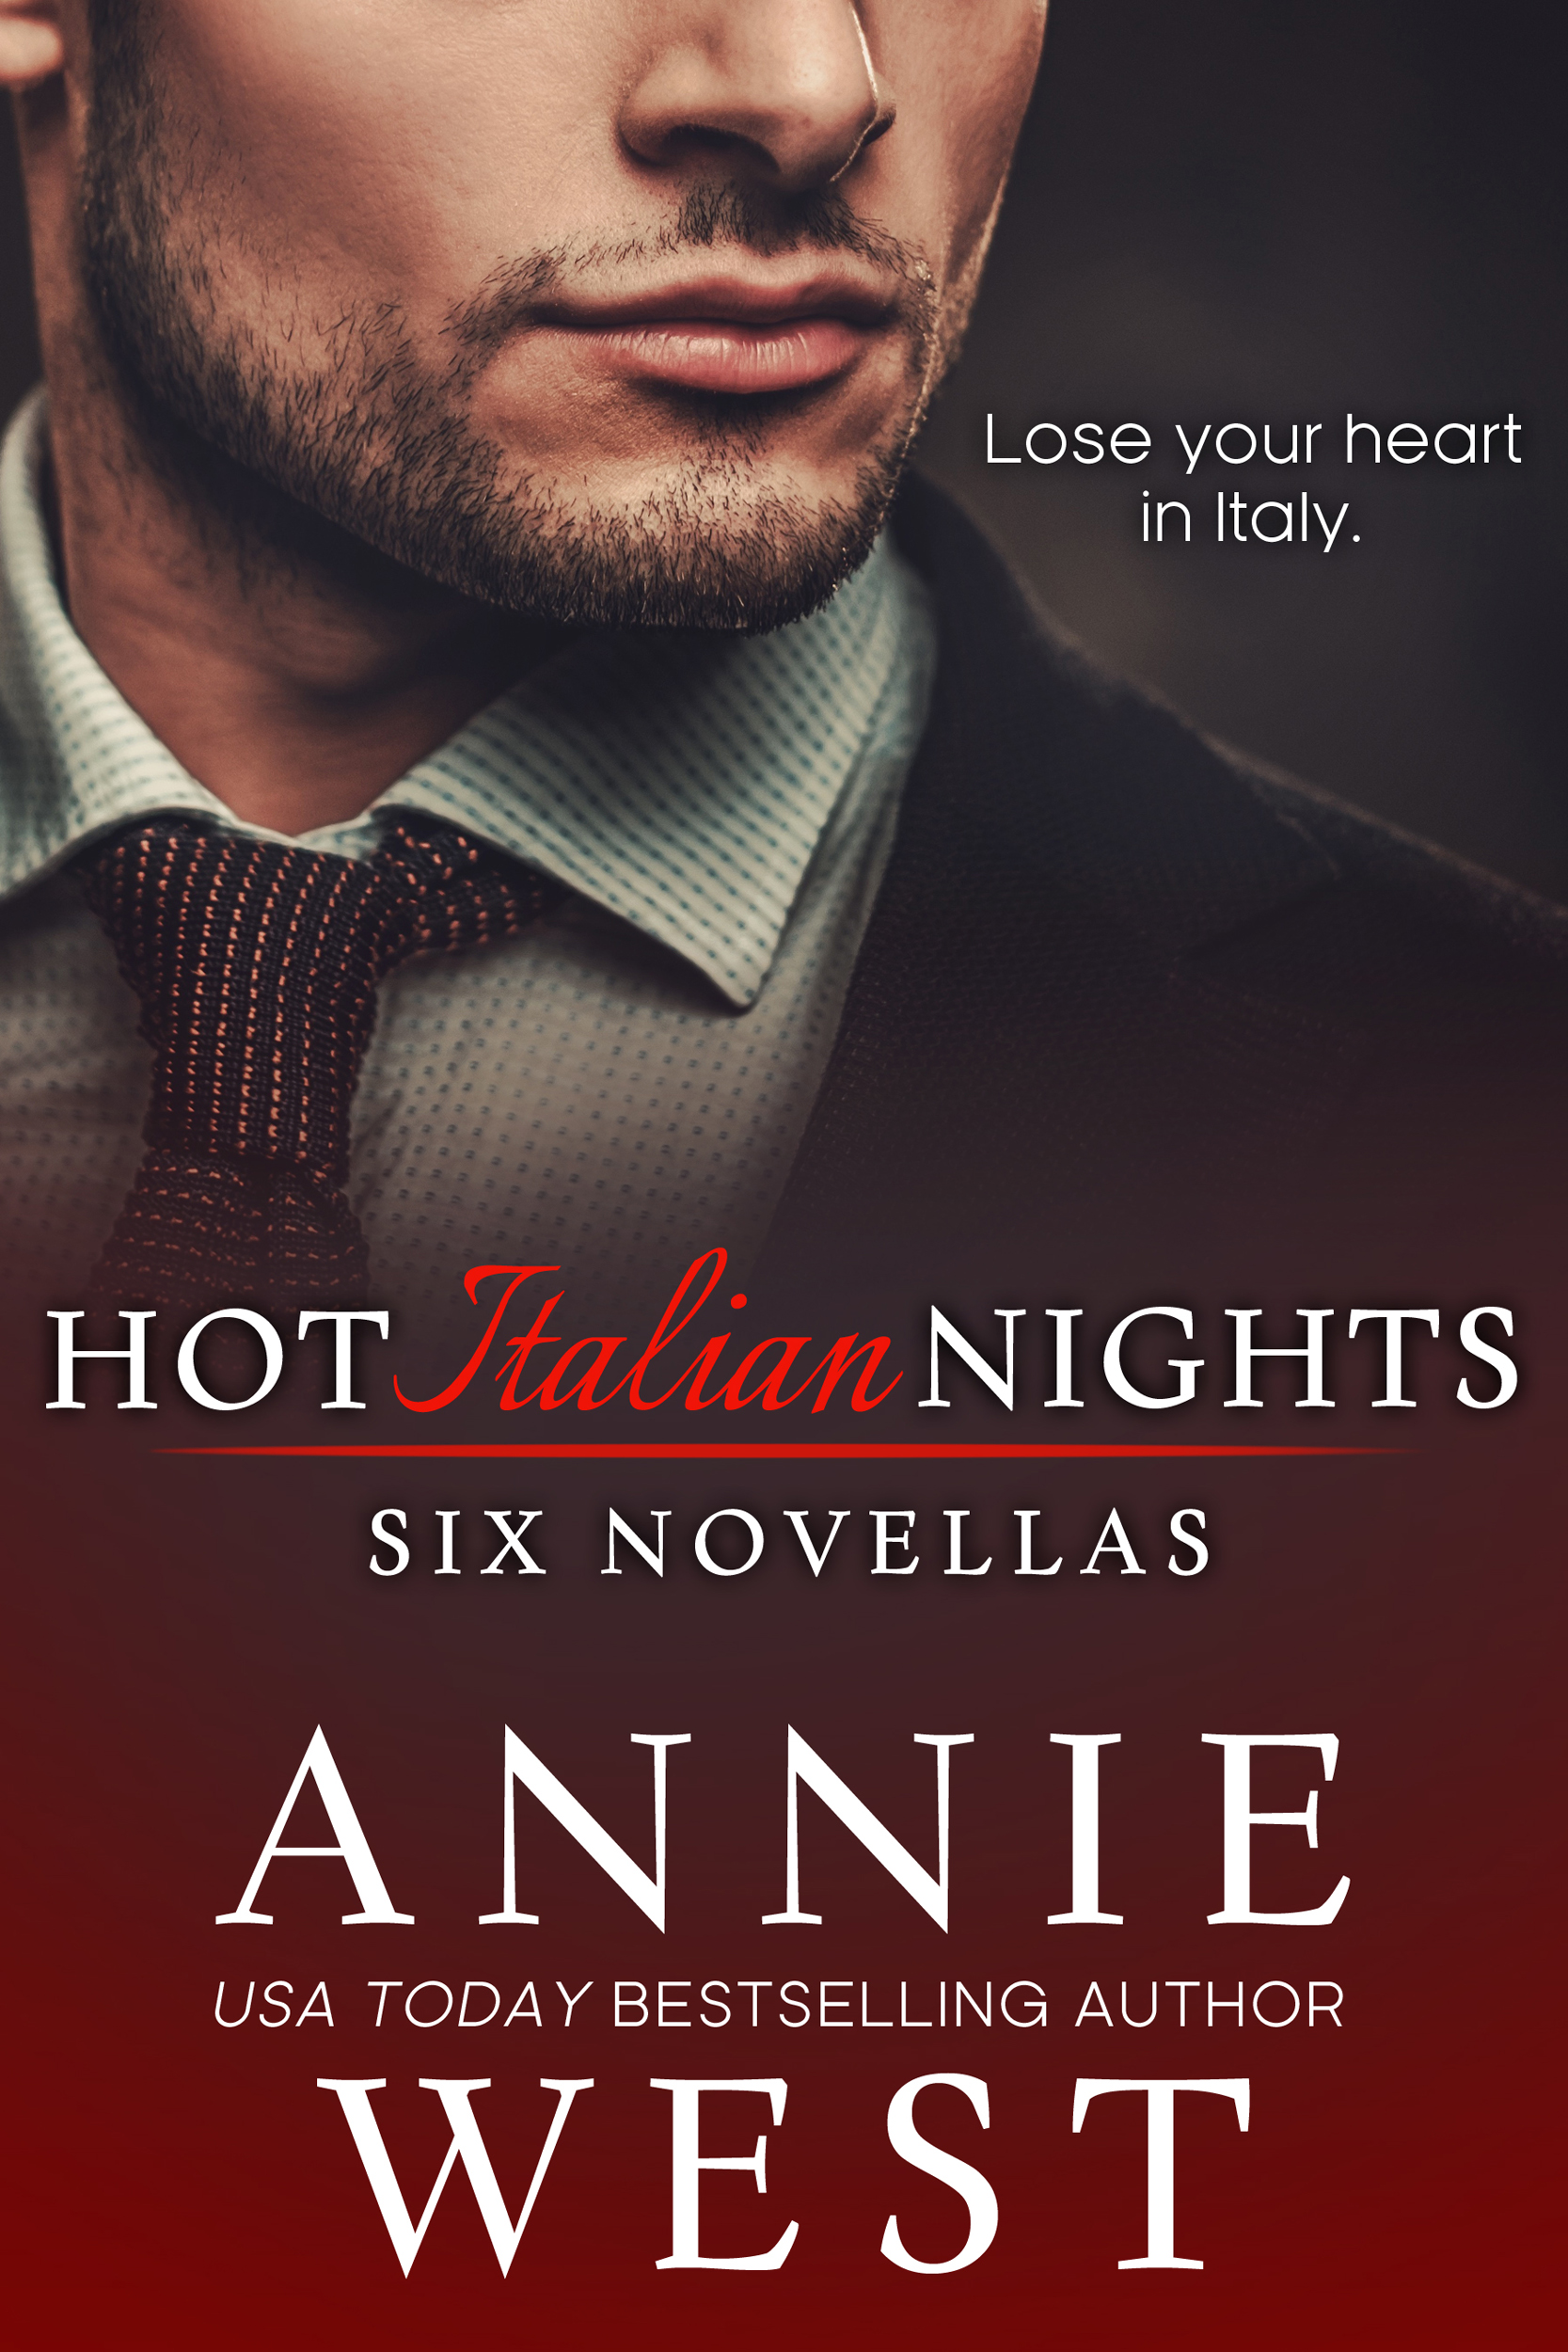 Hot Italian Nights: Six Novellas, an Ebook by Annie West